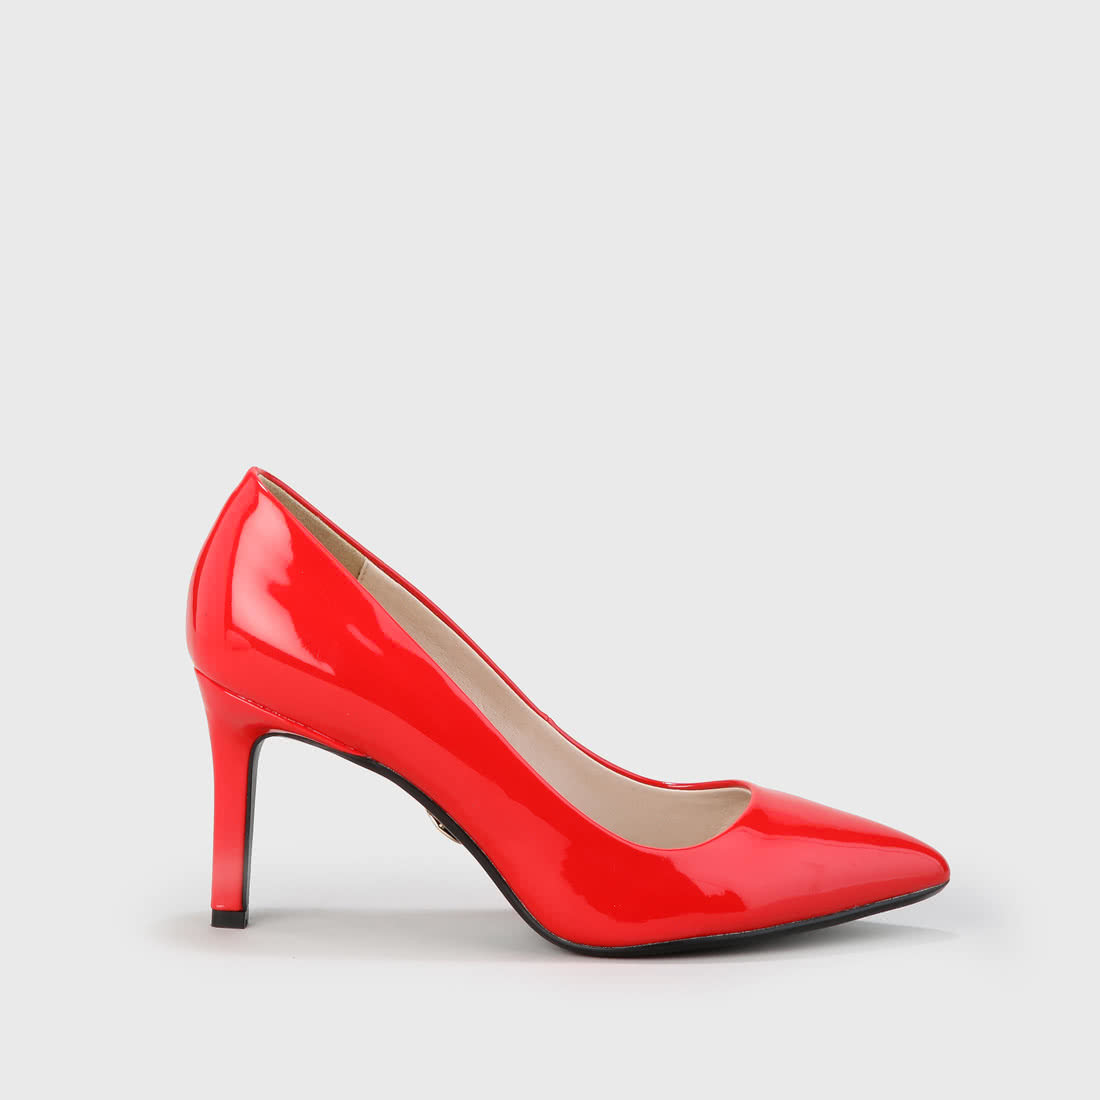 87d371a59 Alivia pumps patent leather look red buy online in BUFFALO Online ...